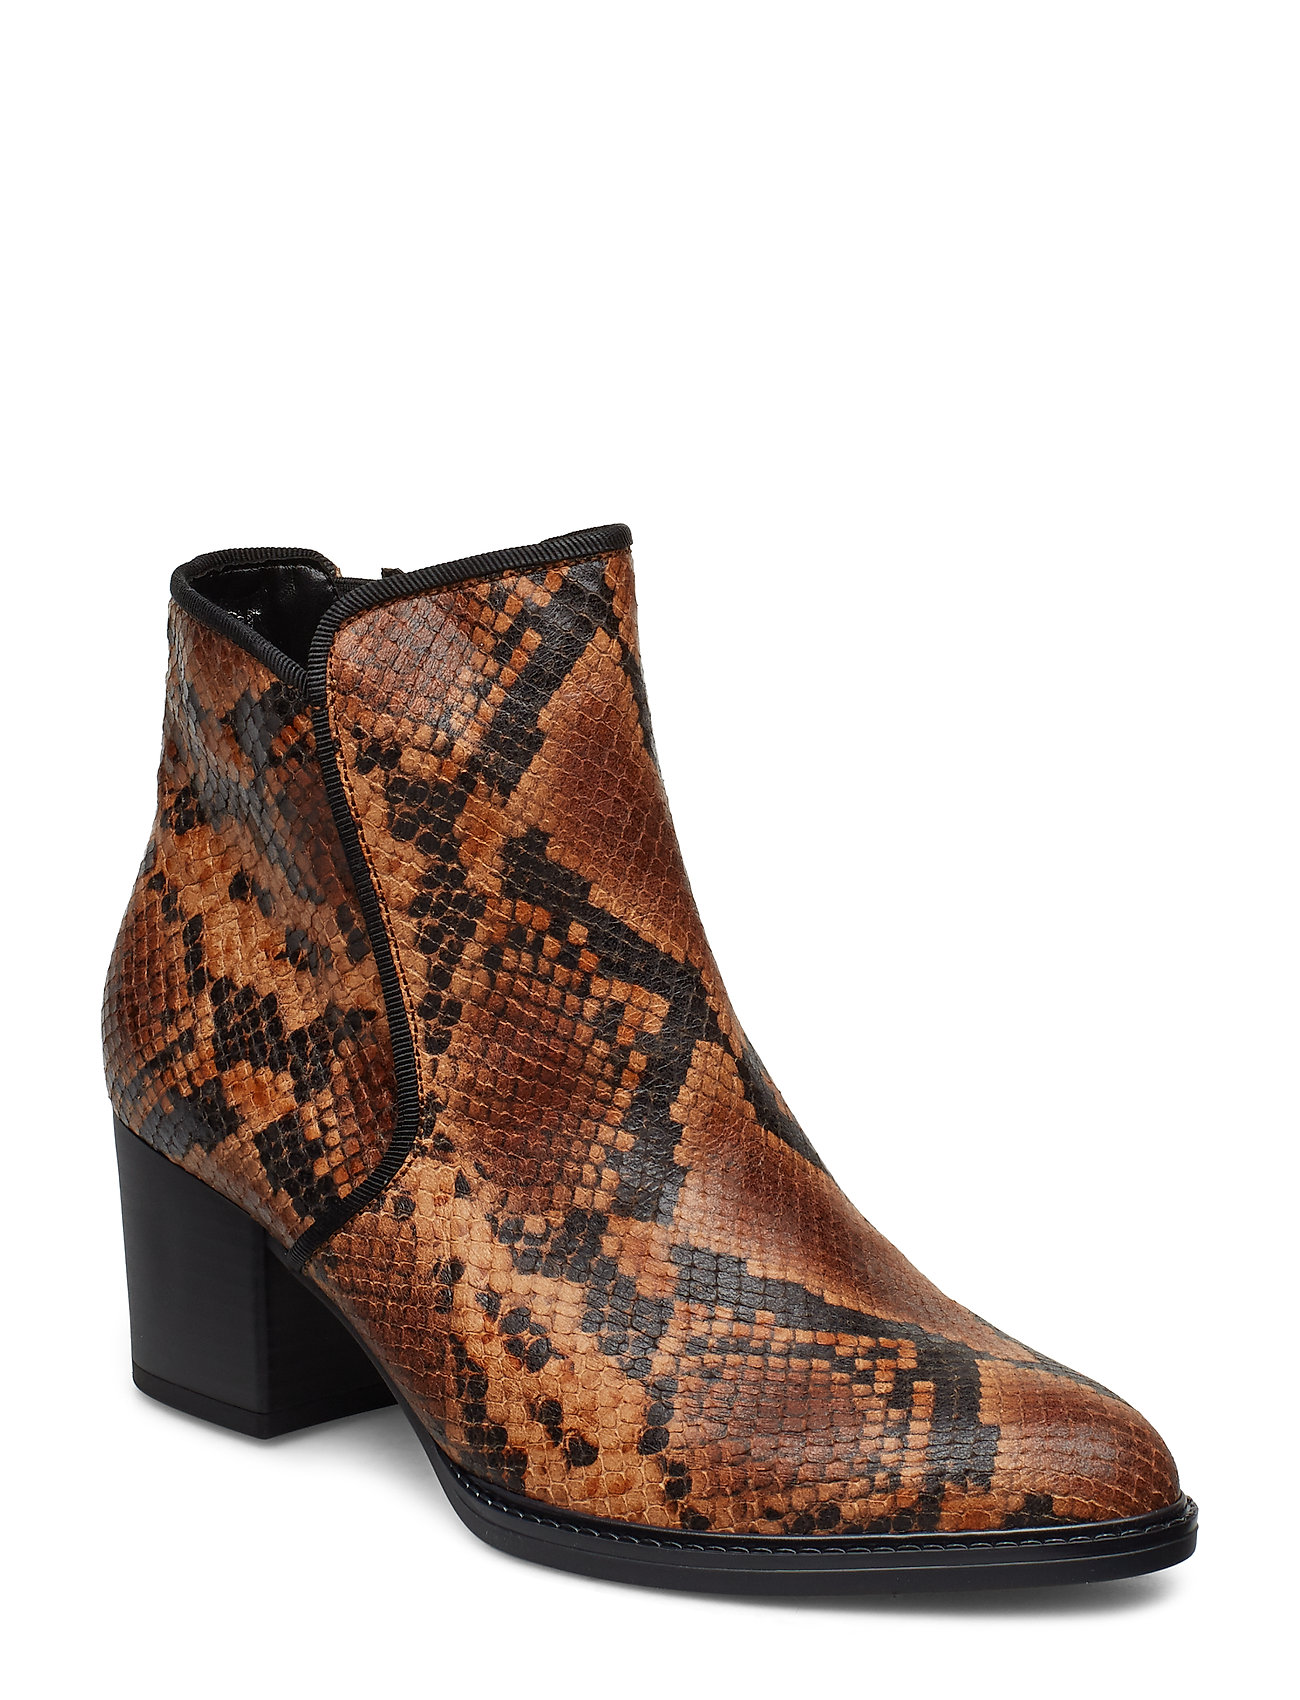 Image of Ankle Boots Shoes Boots Ankle Boots Ankle Boot - Heel Brun Gabor (3406237385)